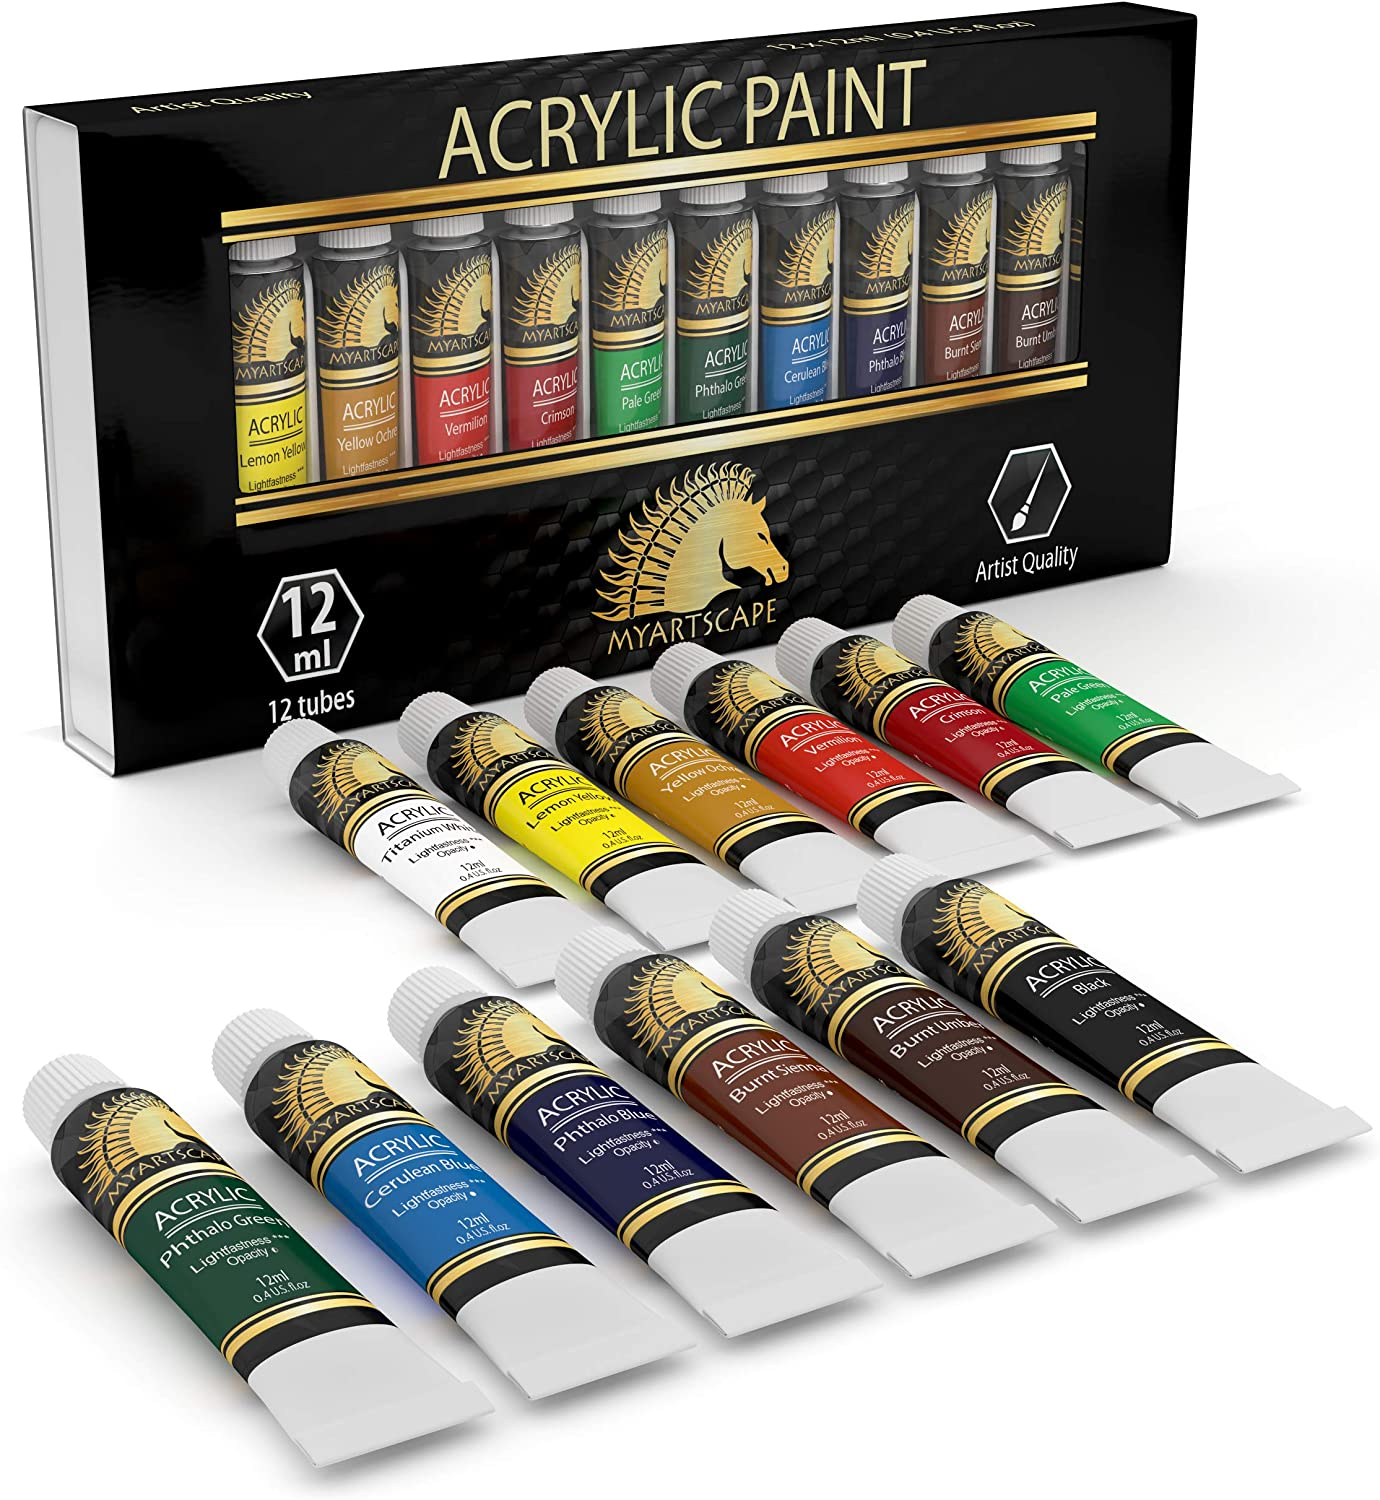 Amazon Com Acrylic Paint Set Artist Quality Paints For Painting Canvas Wood Clay Fabric Nail Art Ceramic Crafts 12 X 12ml Heavy Body Colors Rich Pigments Professional Supplies